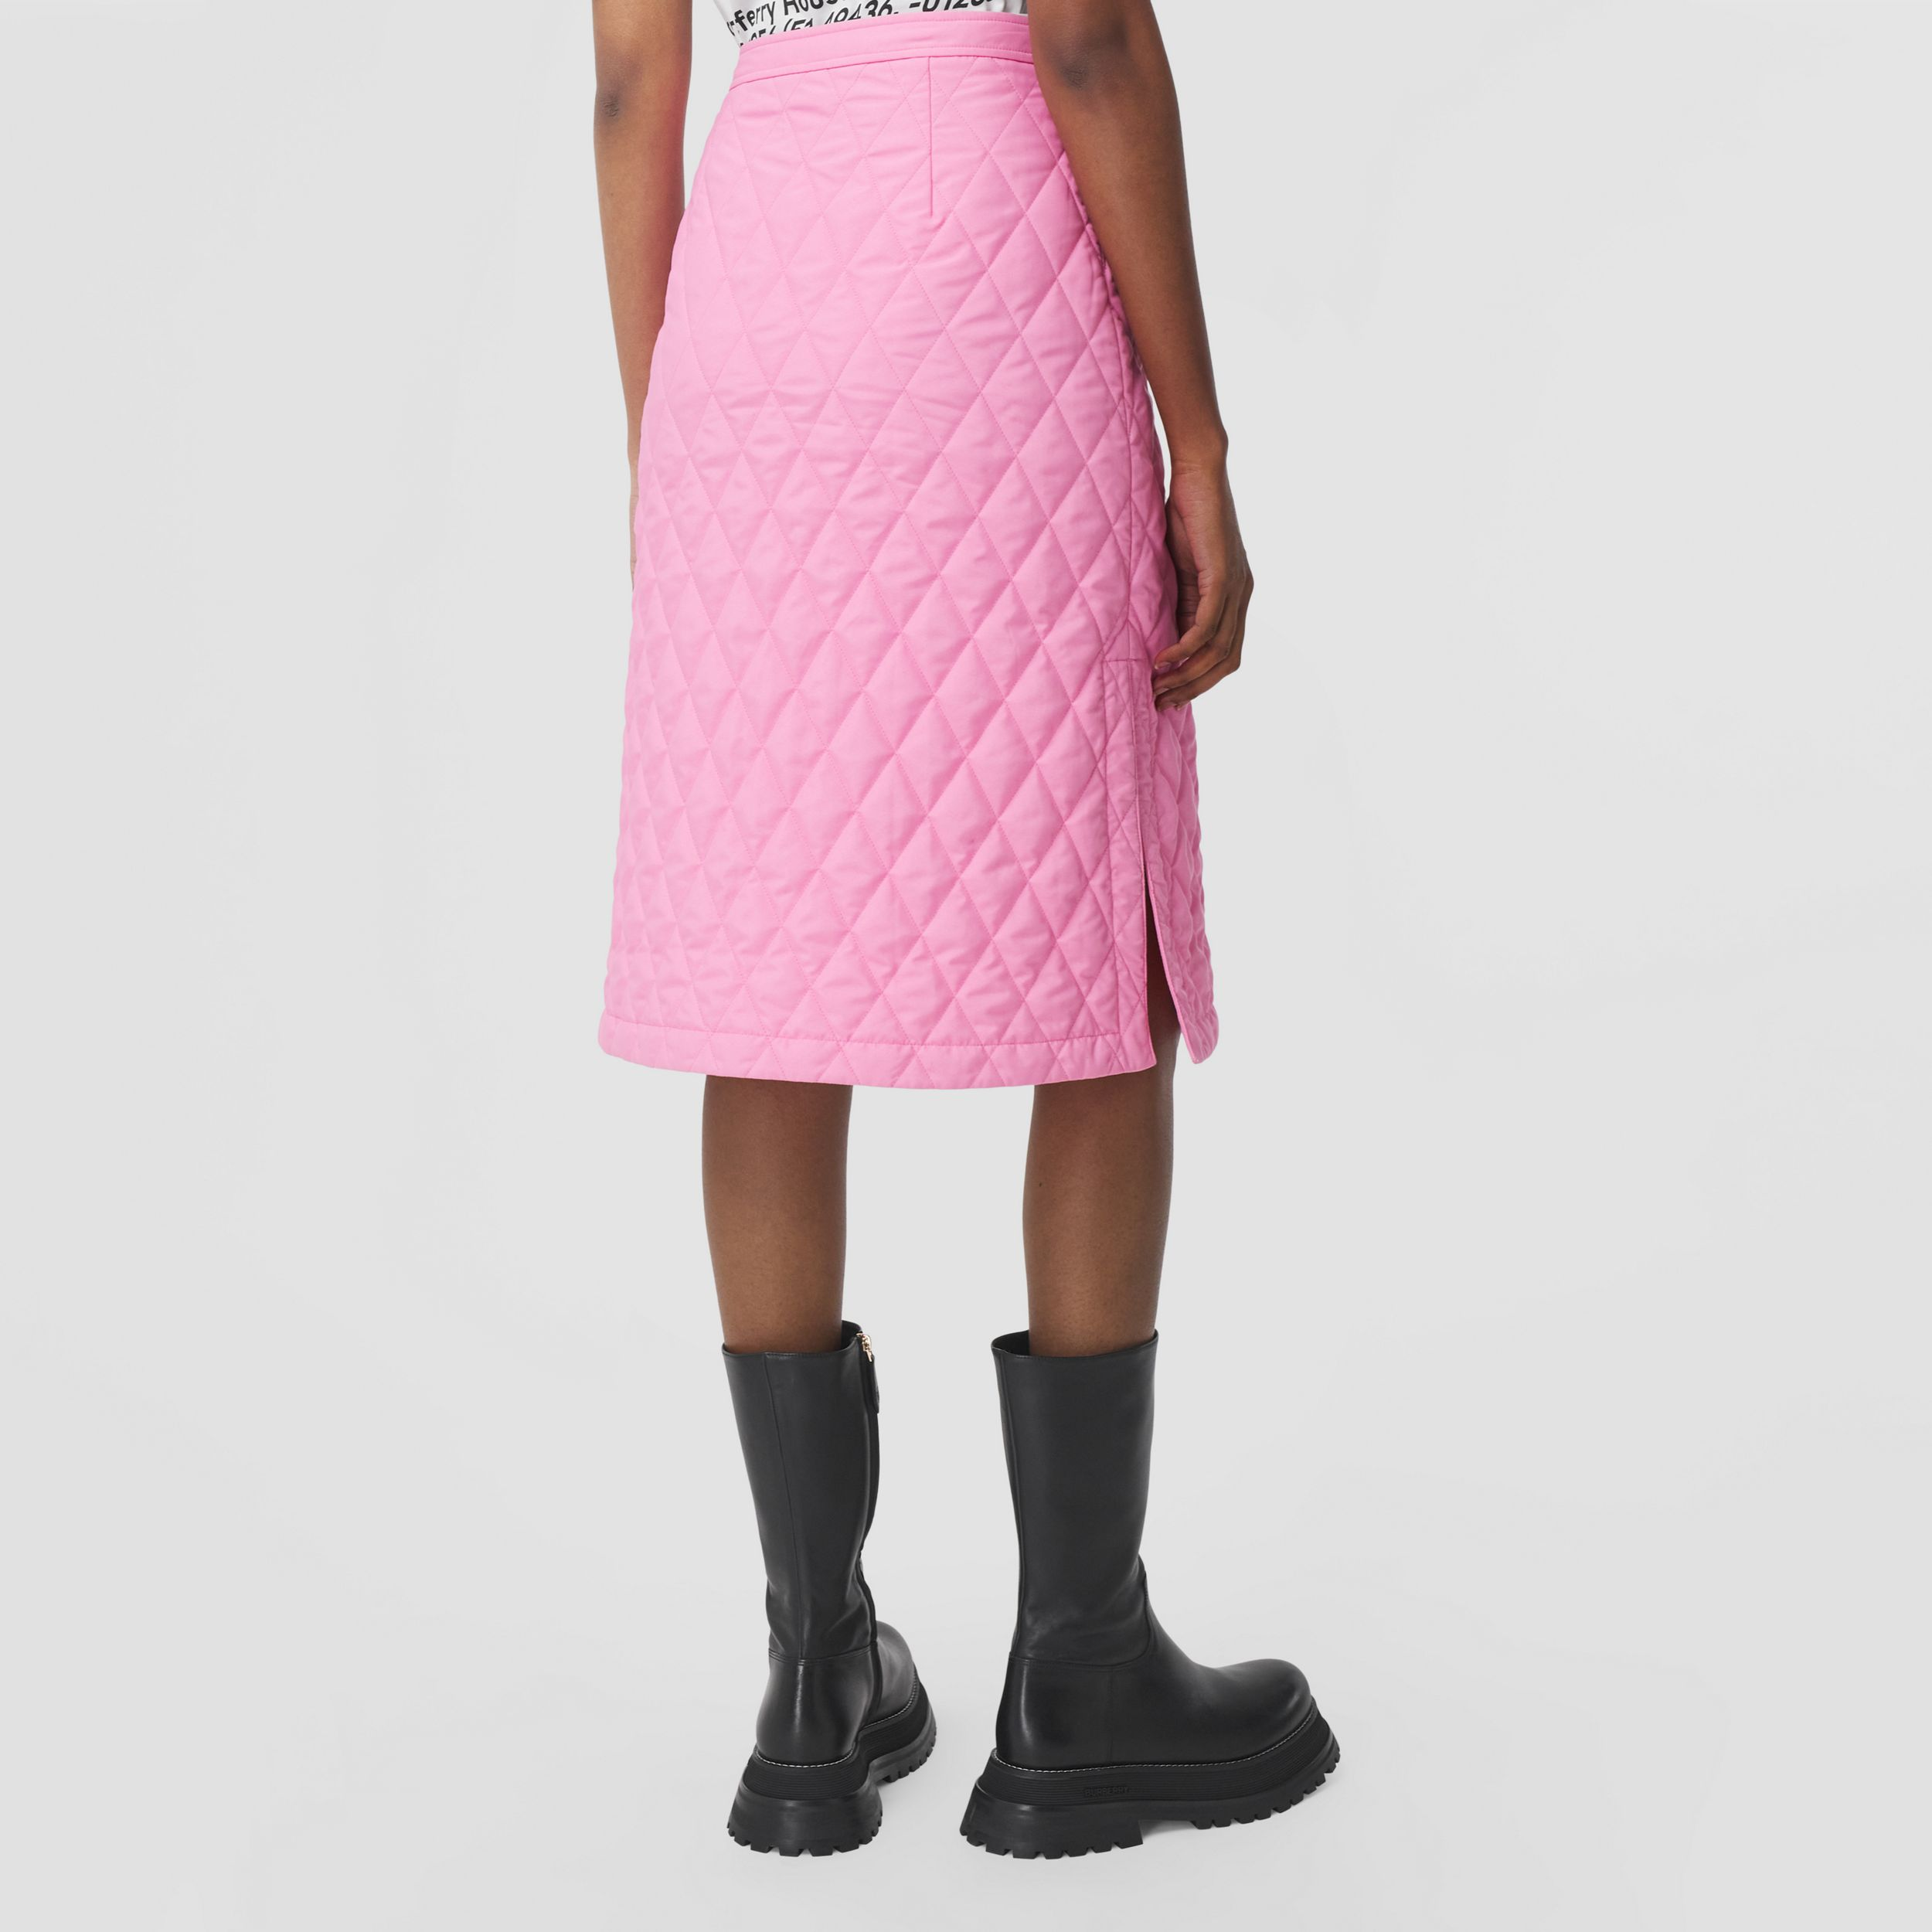 Diamond Quilted Skirt in Bubblegum Pink - Women | Burberry - 3